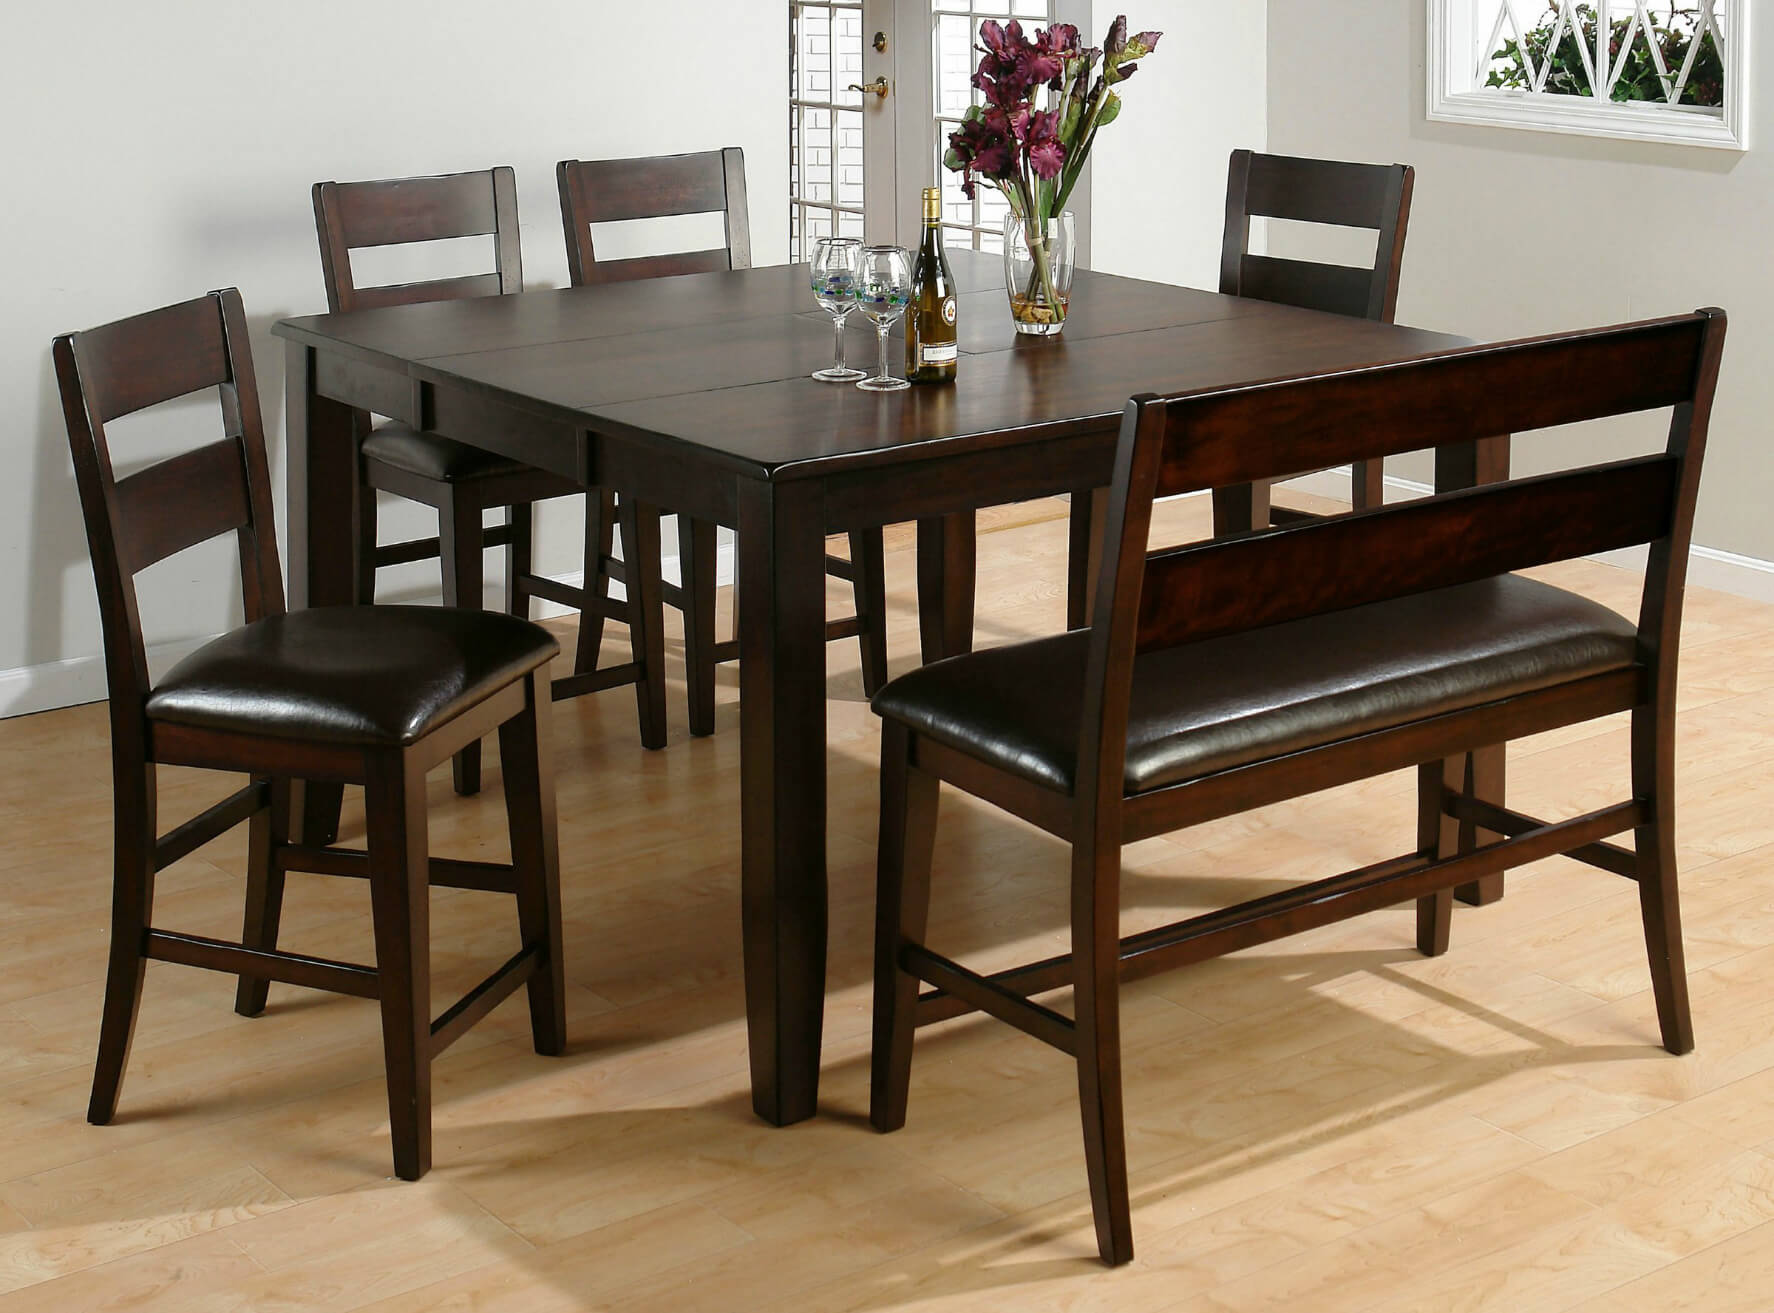 Here's a counter height square dining room table with bench. Moreover, the bench includes a back (not very typical). This set is constructed with solid wood and veneers. The table comes with an extension butterfly leaf which adds 18 inches to its length.